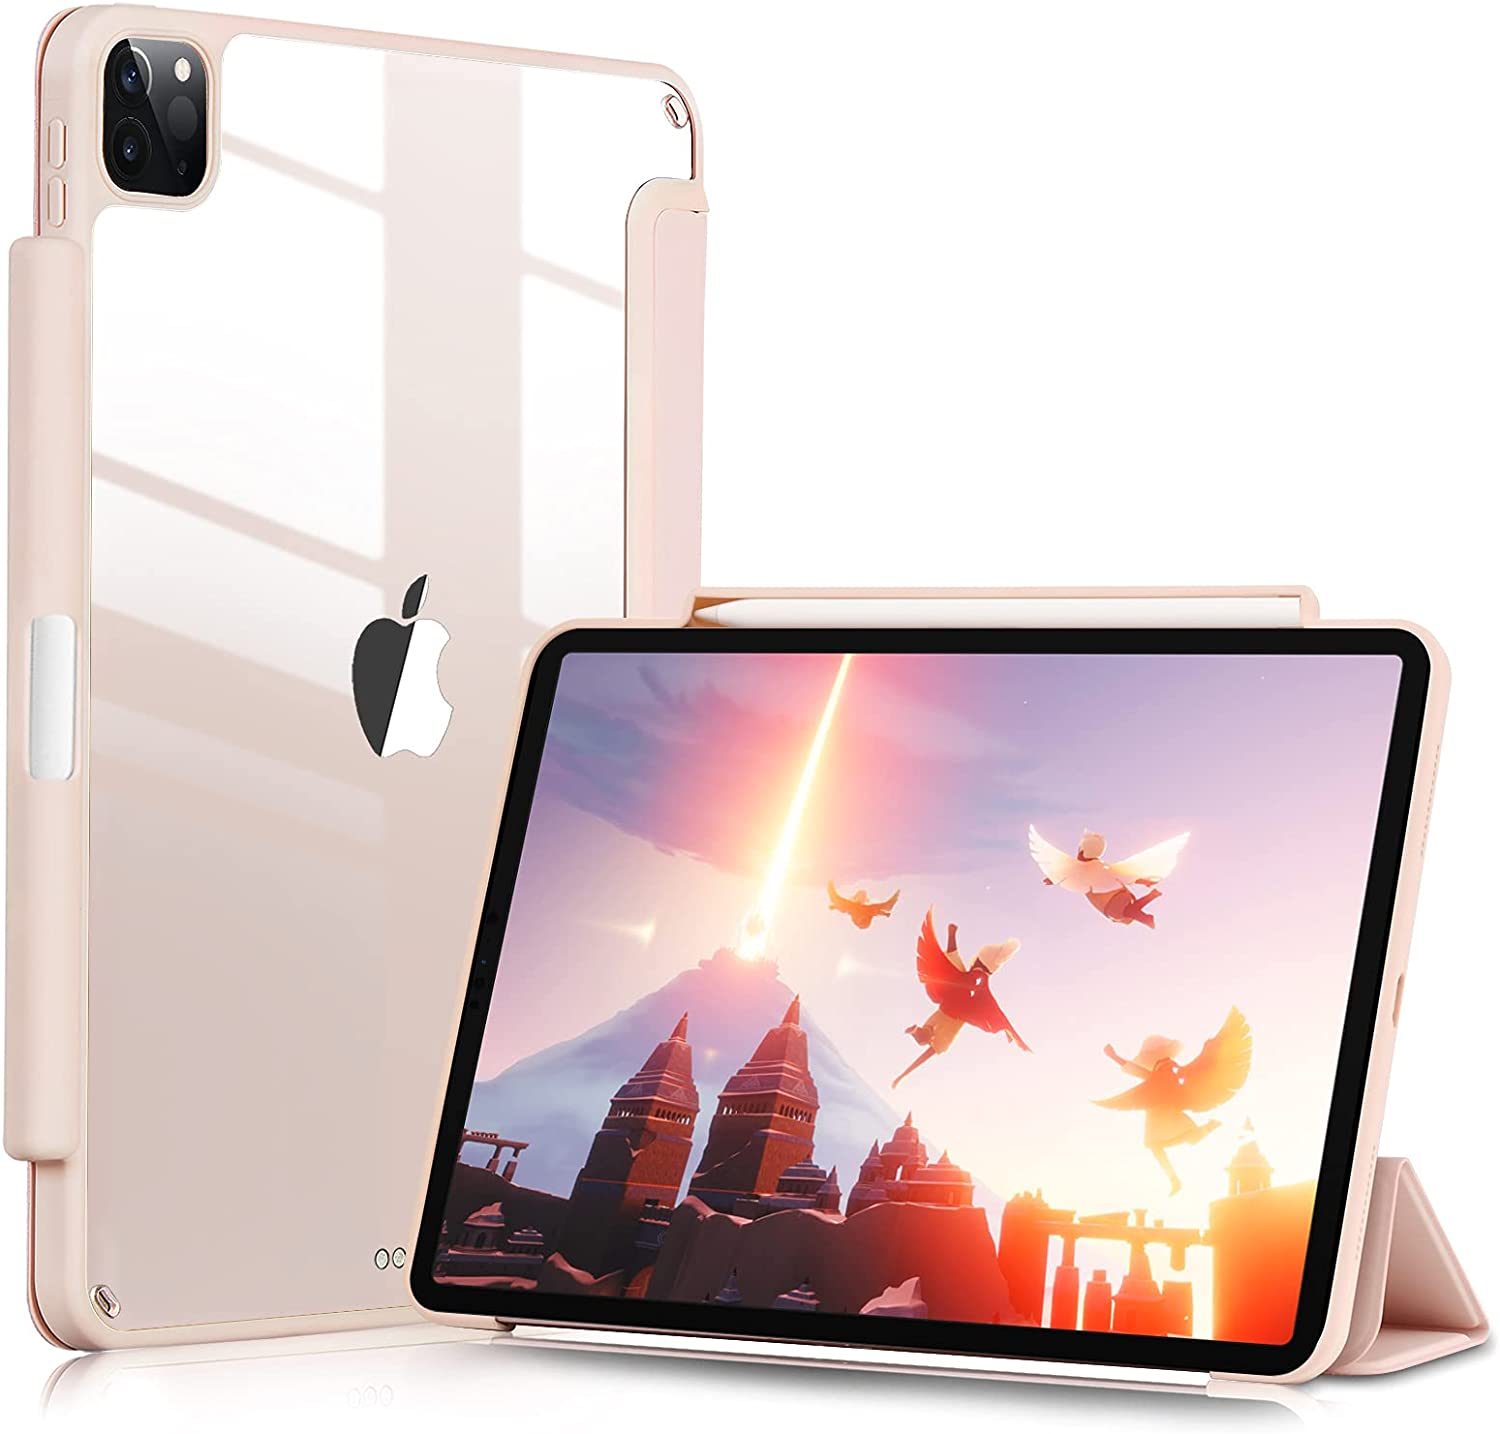 GHINL Case for iPad Pro 11 Inch 2nd Generation 2020 with Pencil Holder [Support iPad 2nd Pencil Charging & Pair] Acrylic Slim Transparent Back Cover Smart Trifold Stand Protective Cover (Pink)